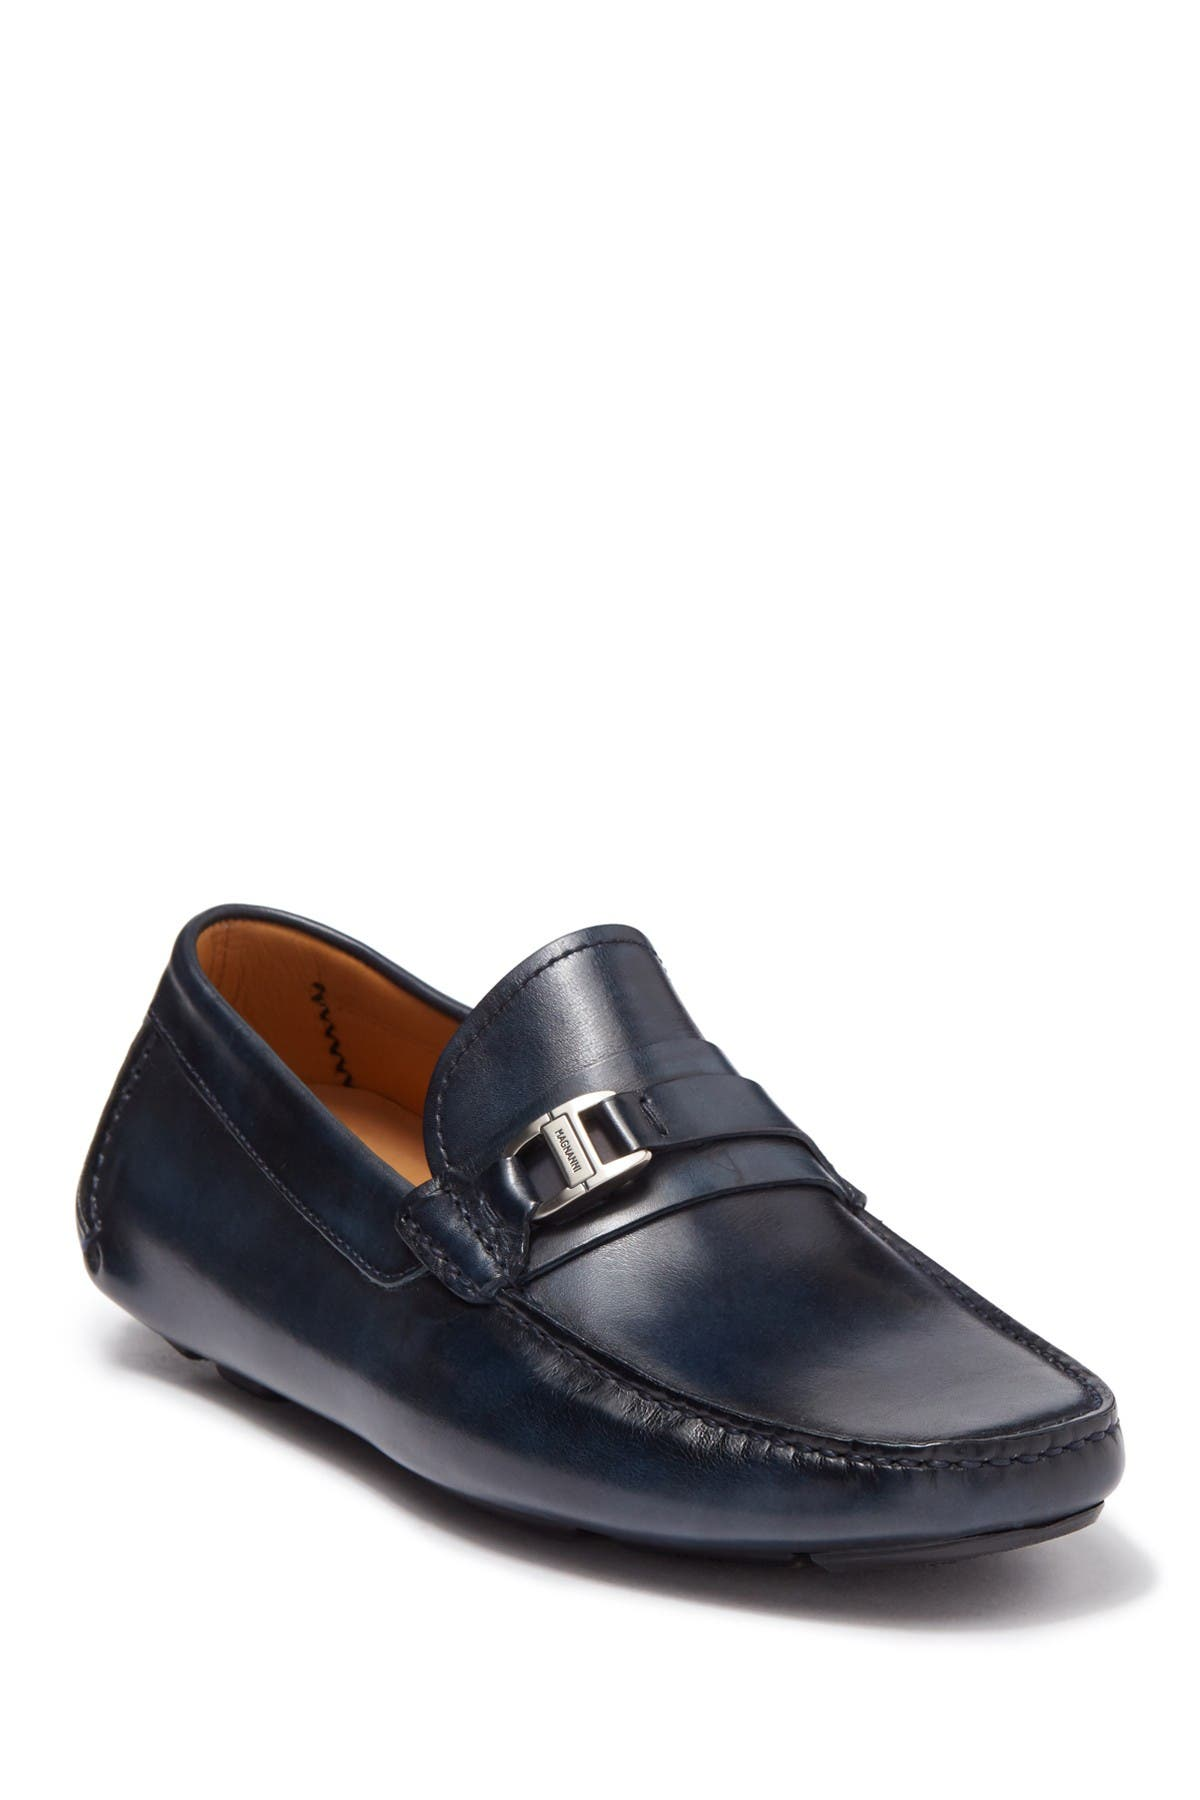 Image of Magnanni Rocha Leather Bit Driver